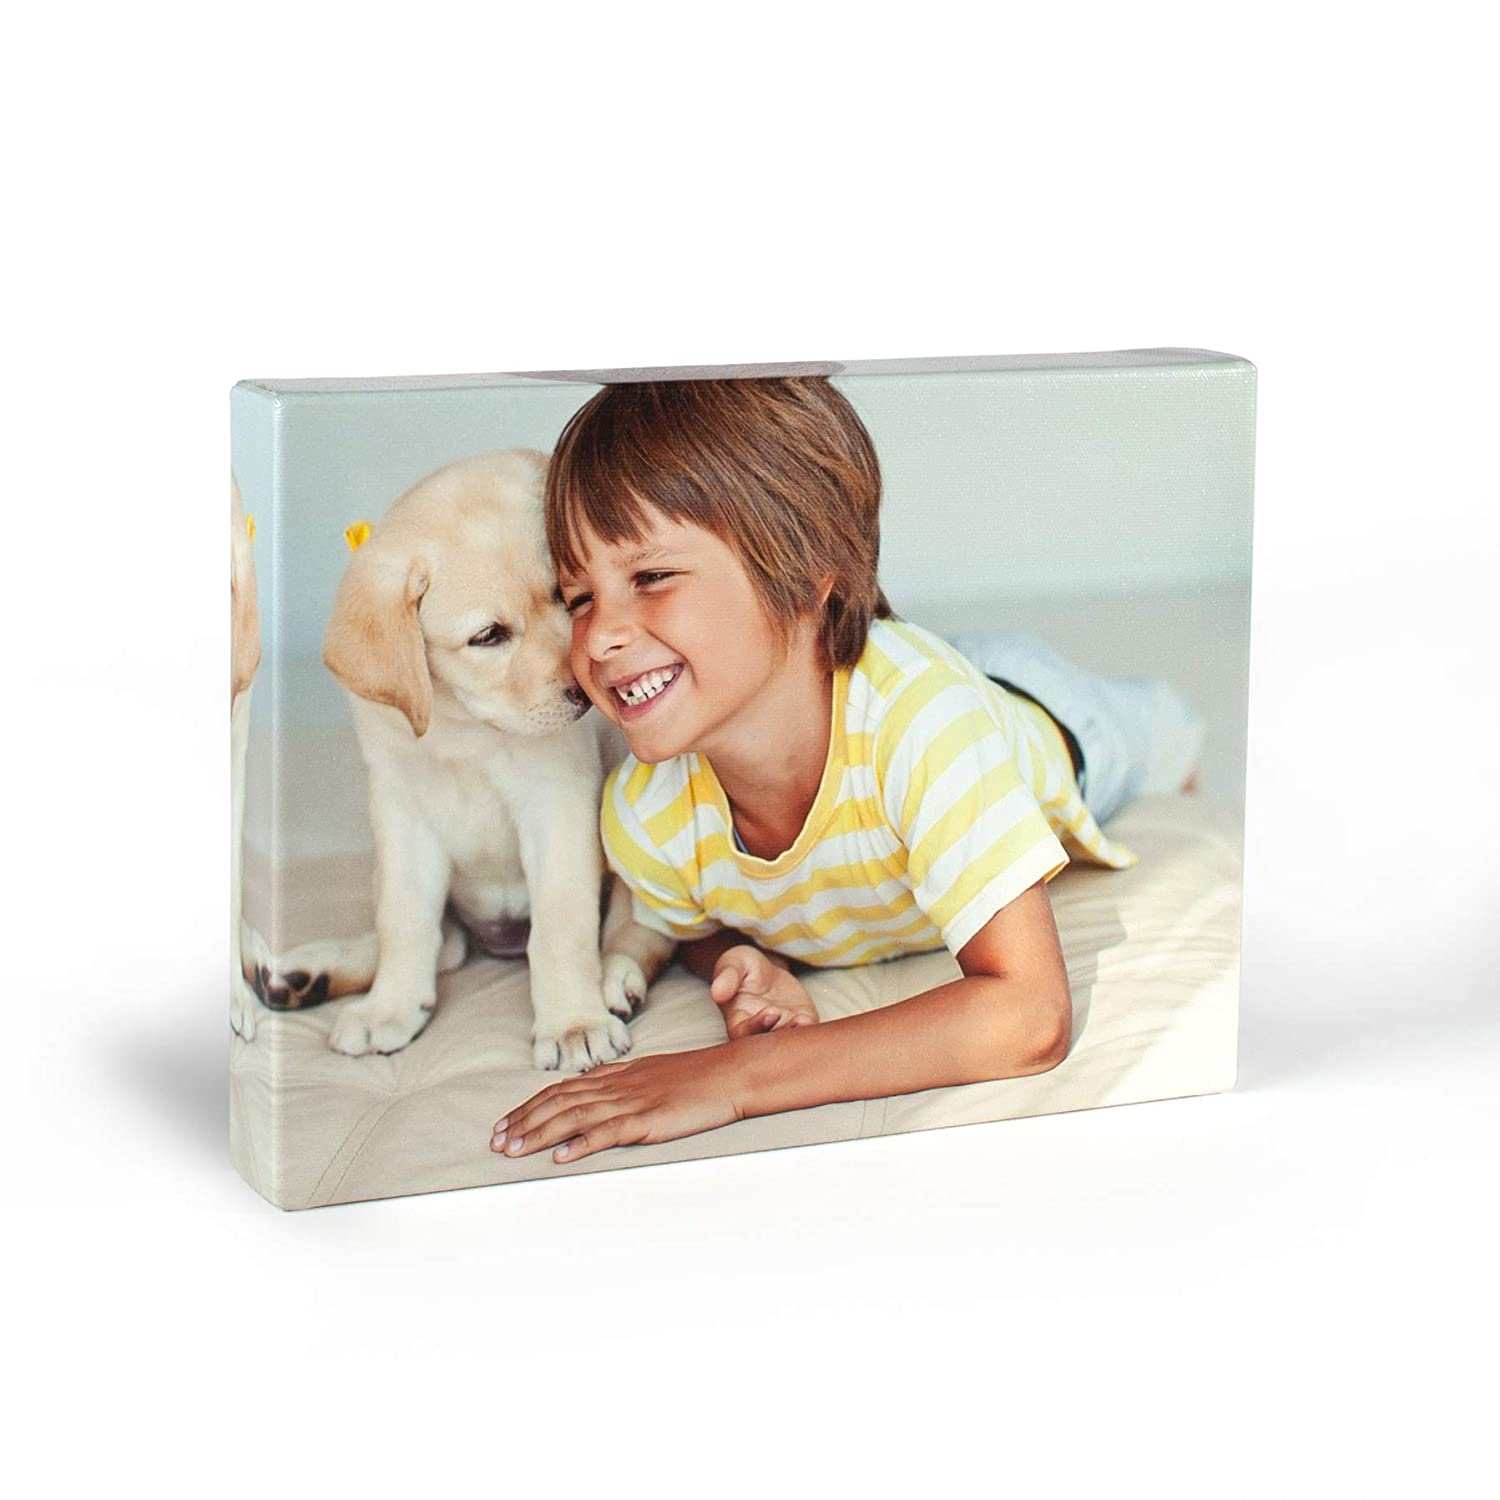 ArtToFrames 20x24 Custom Canvas Print - Upload Your Photo or Picture - 1.5 Inch Gallery Wrap - Mirror Edges.